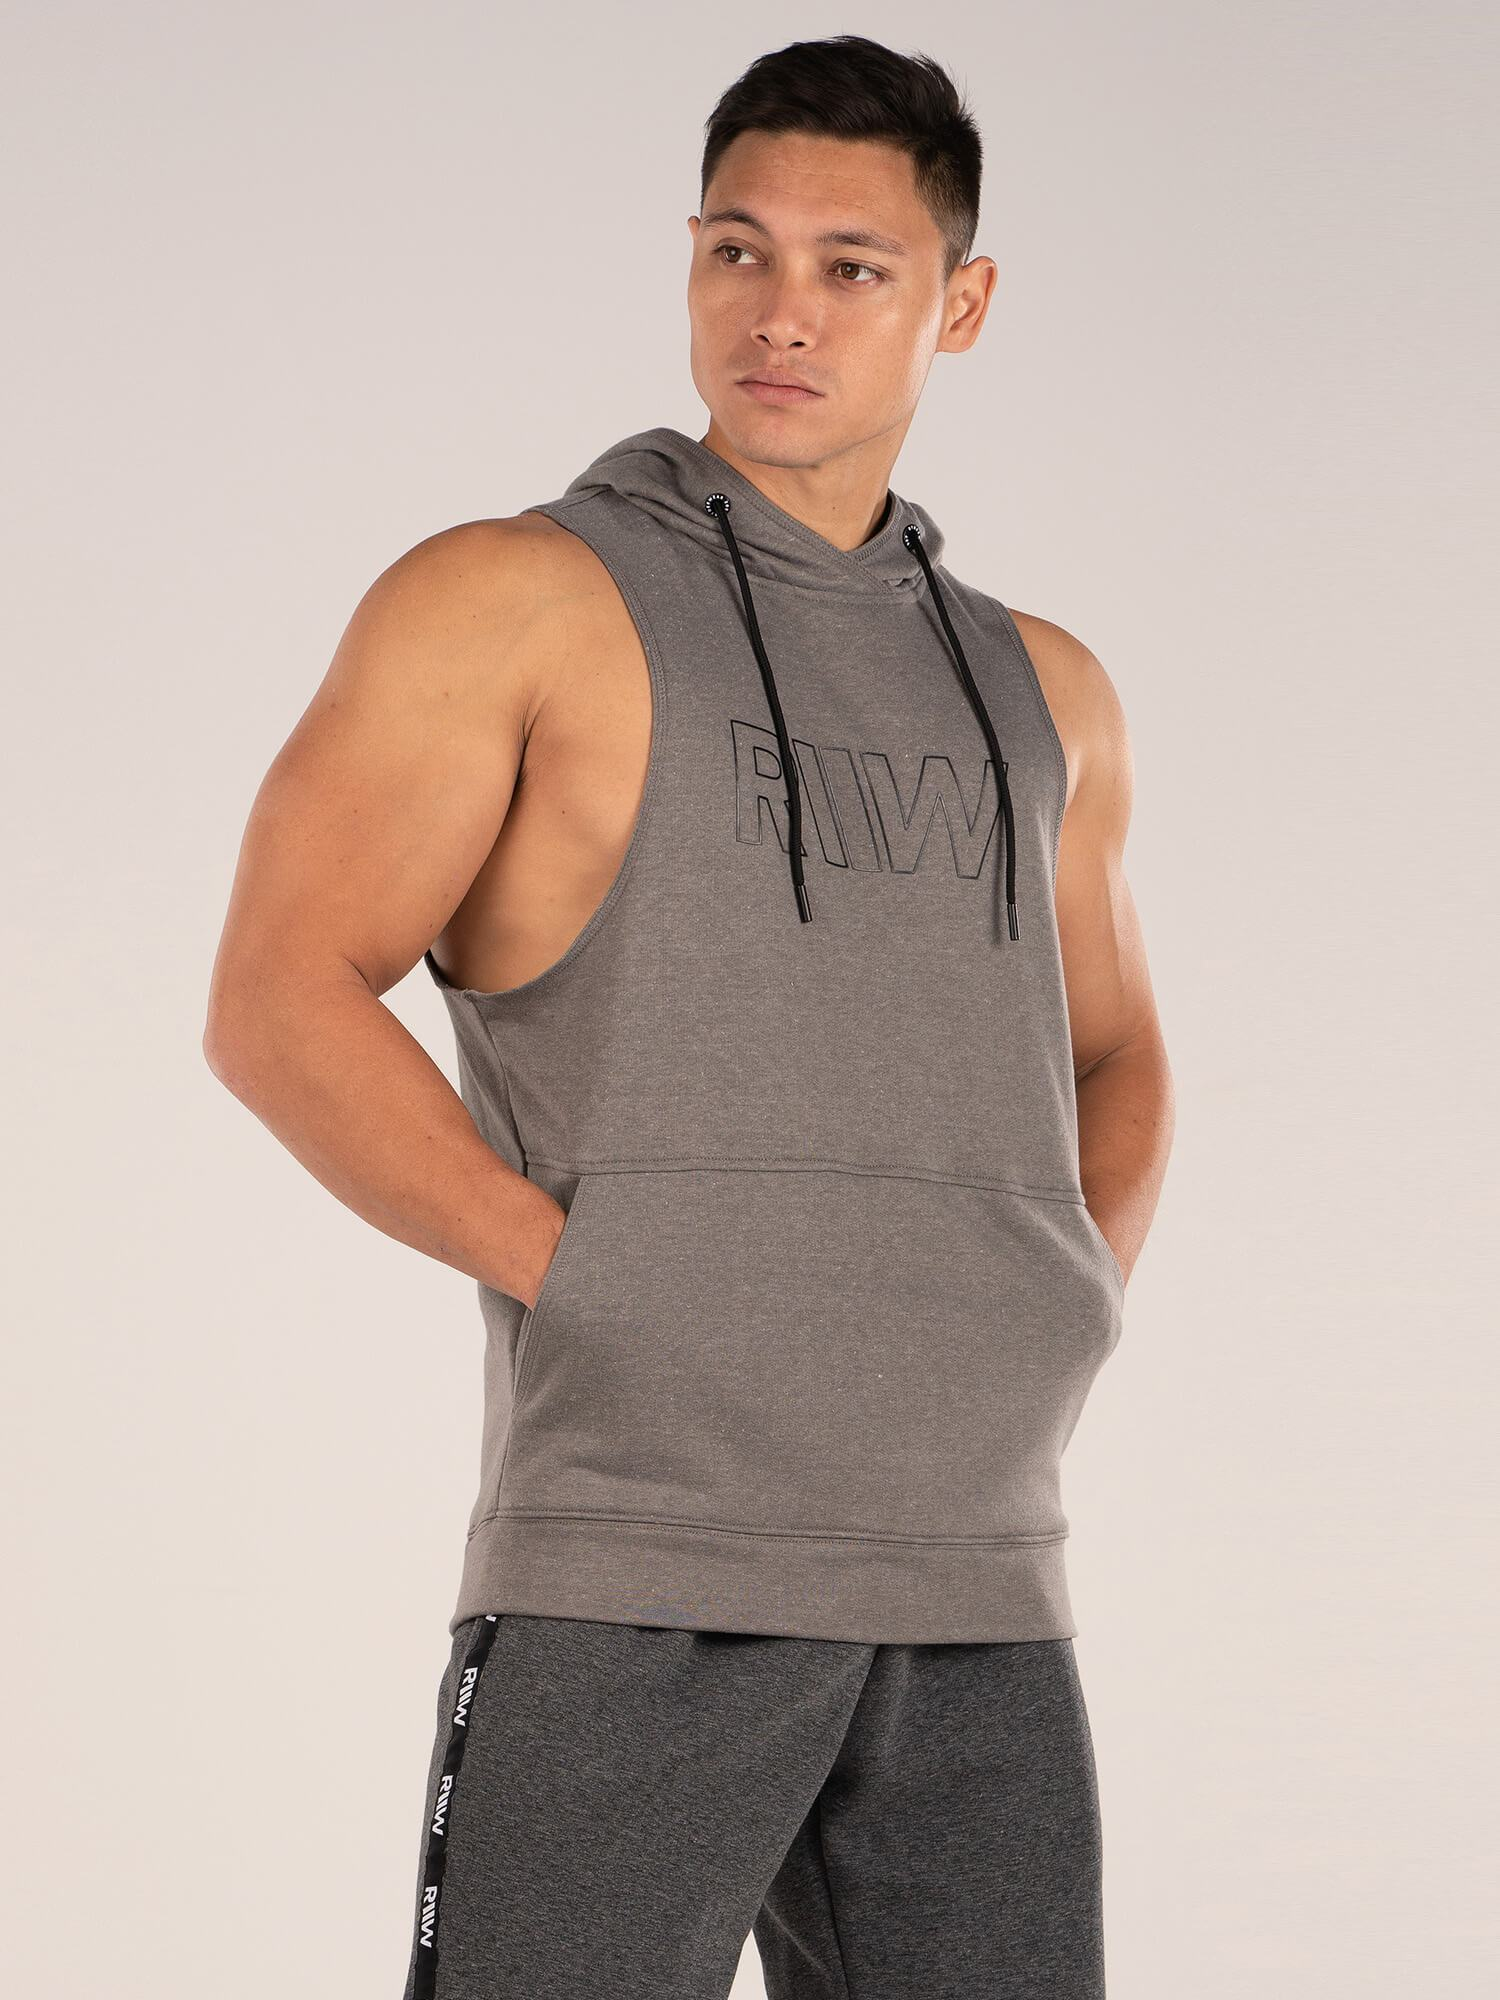 Ryder Wear Royal Sleeveless Hoodie - Charcoal